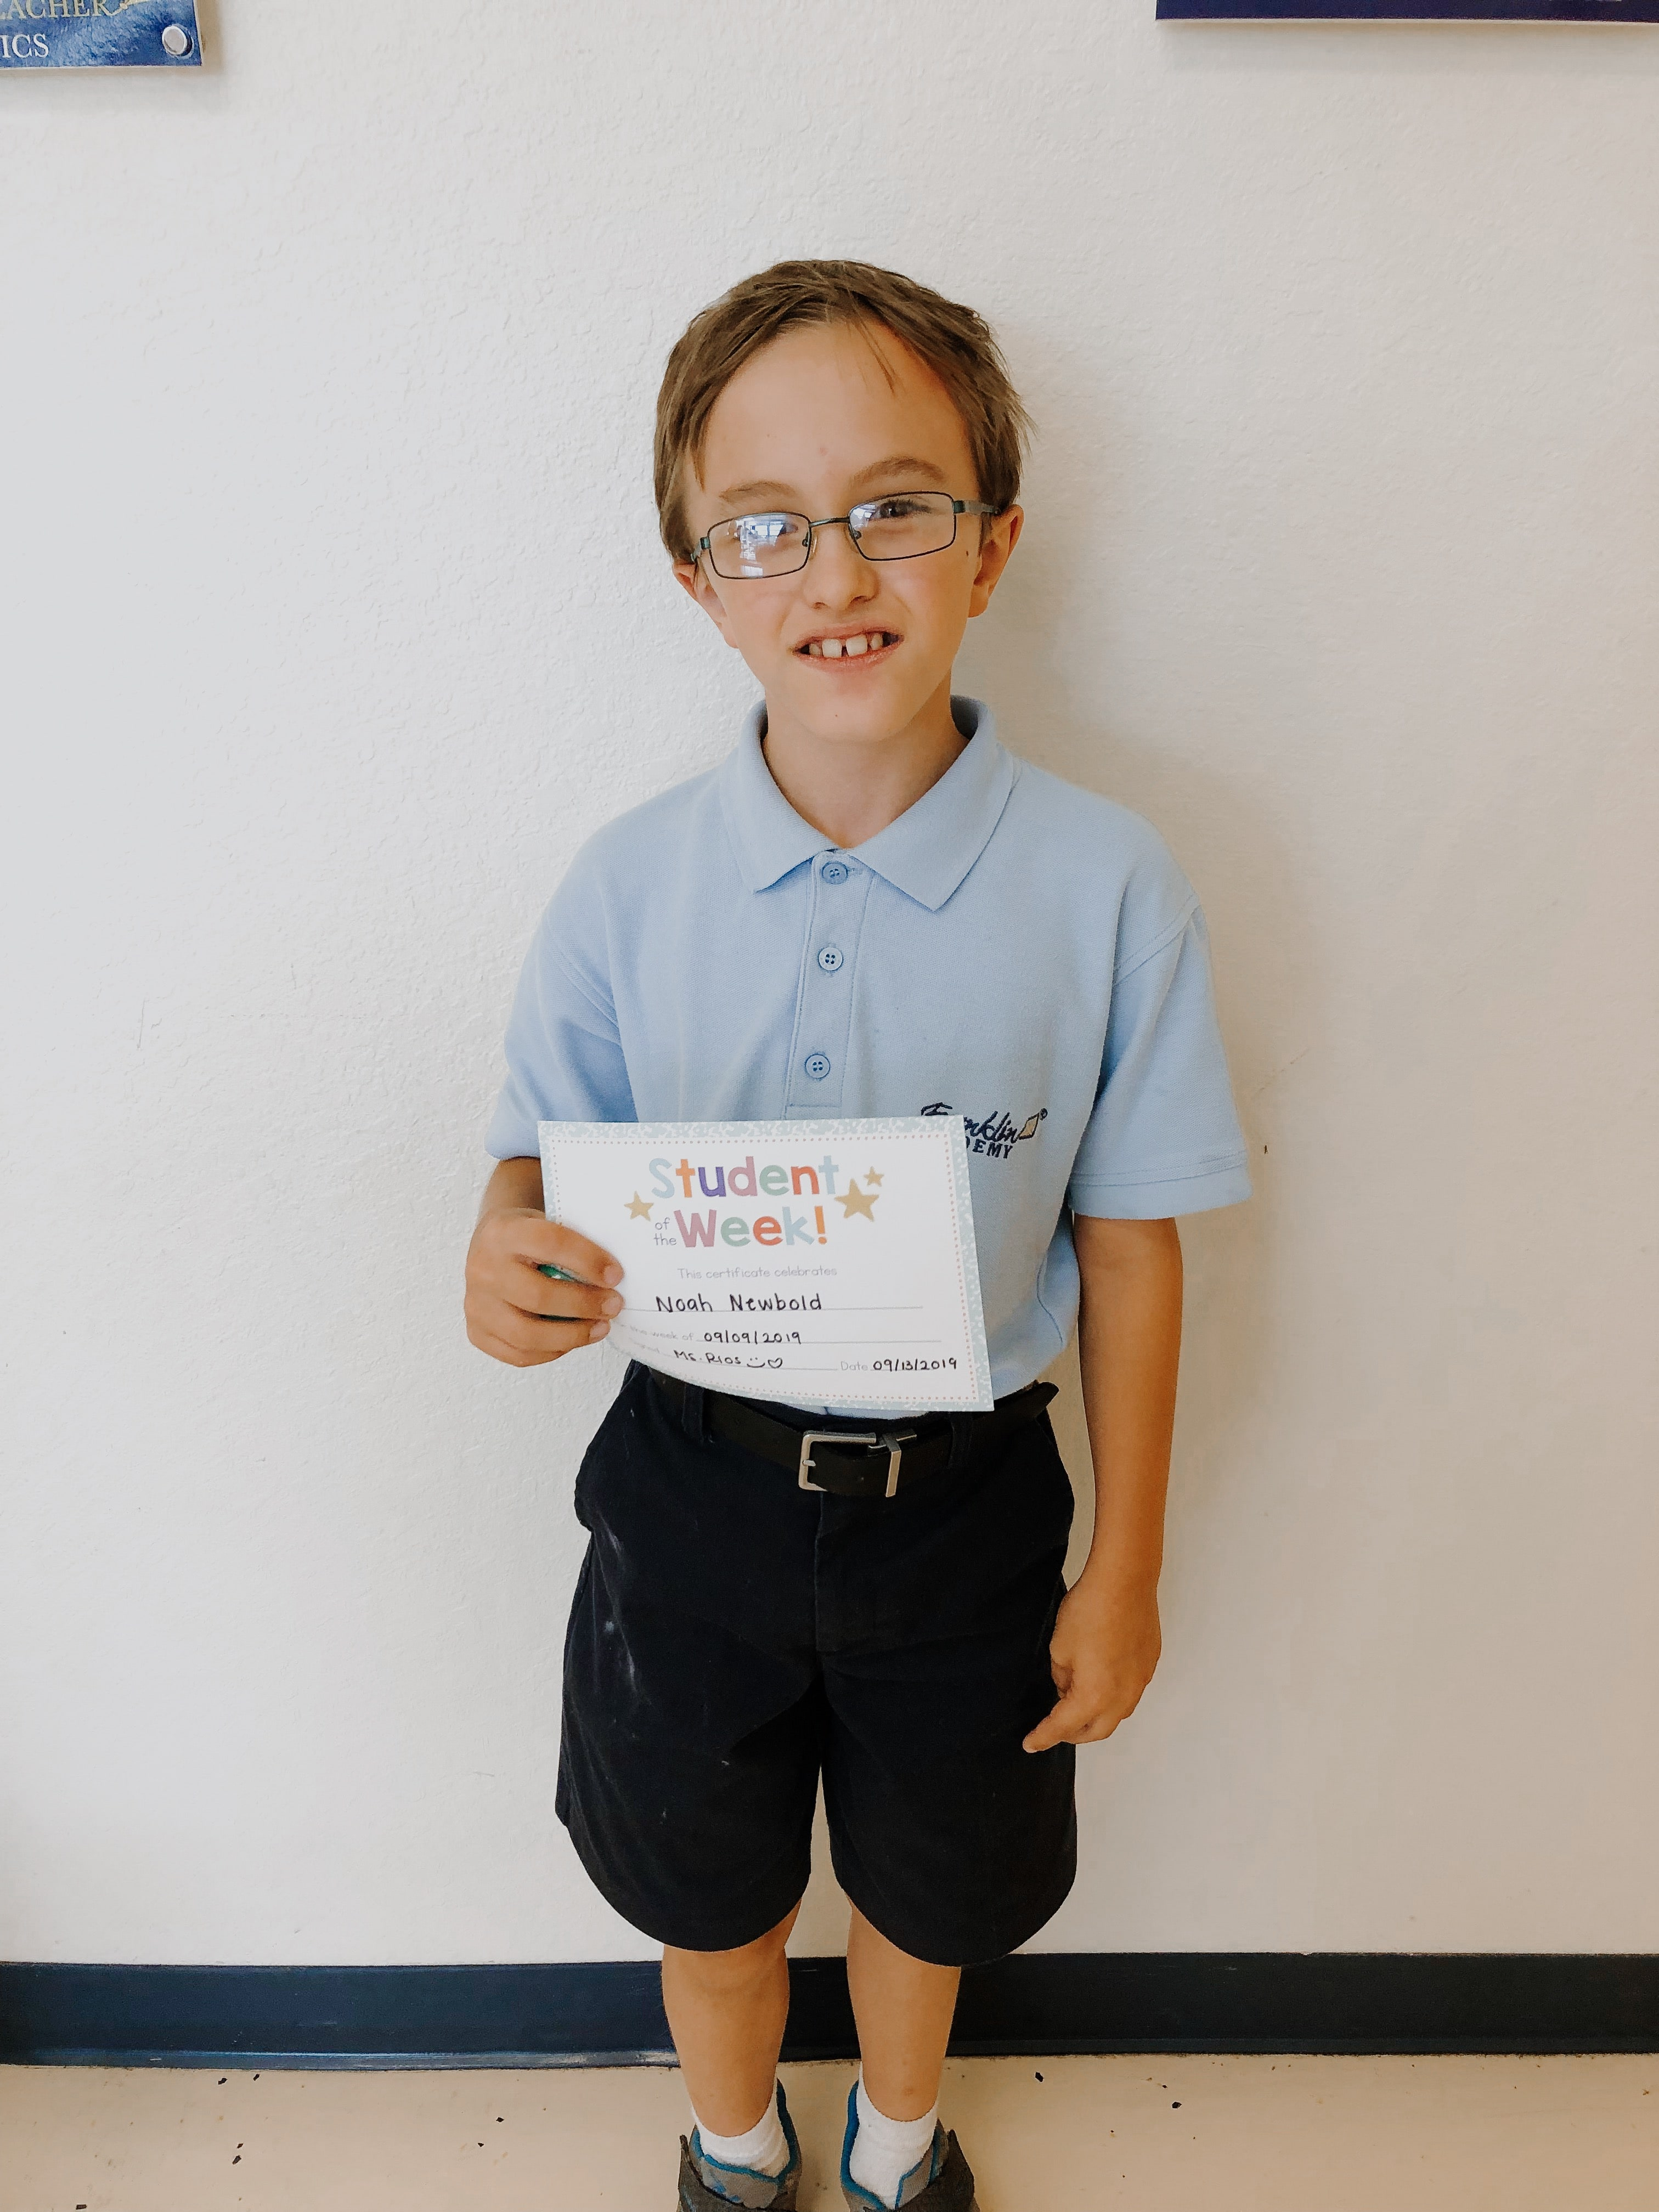 STUDENT OF THE WEEK! Image number 3